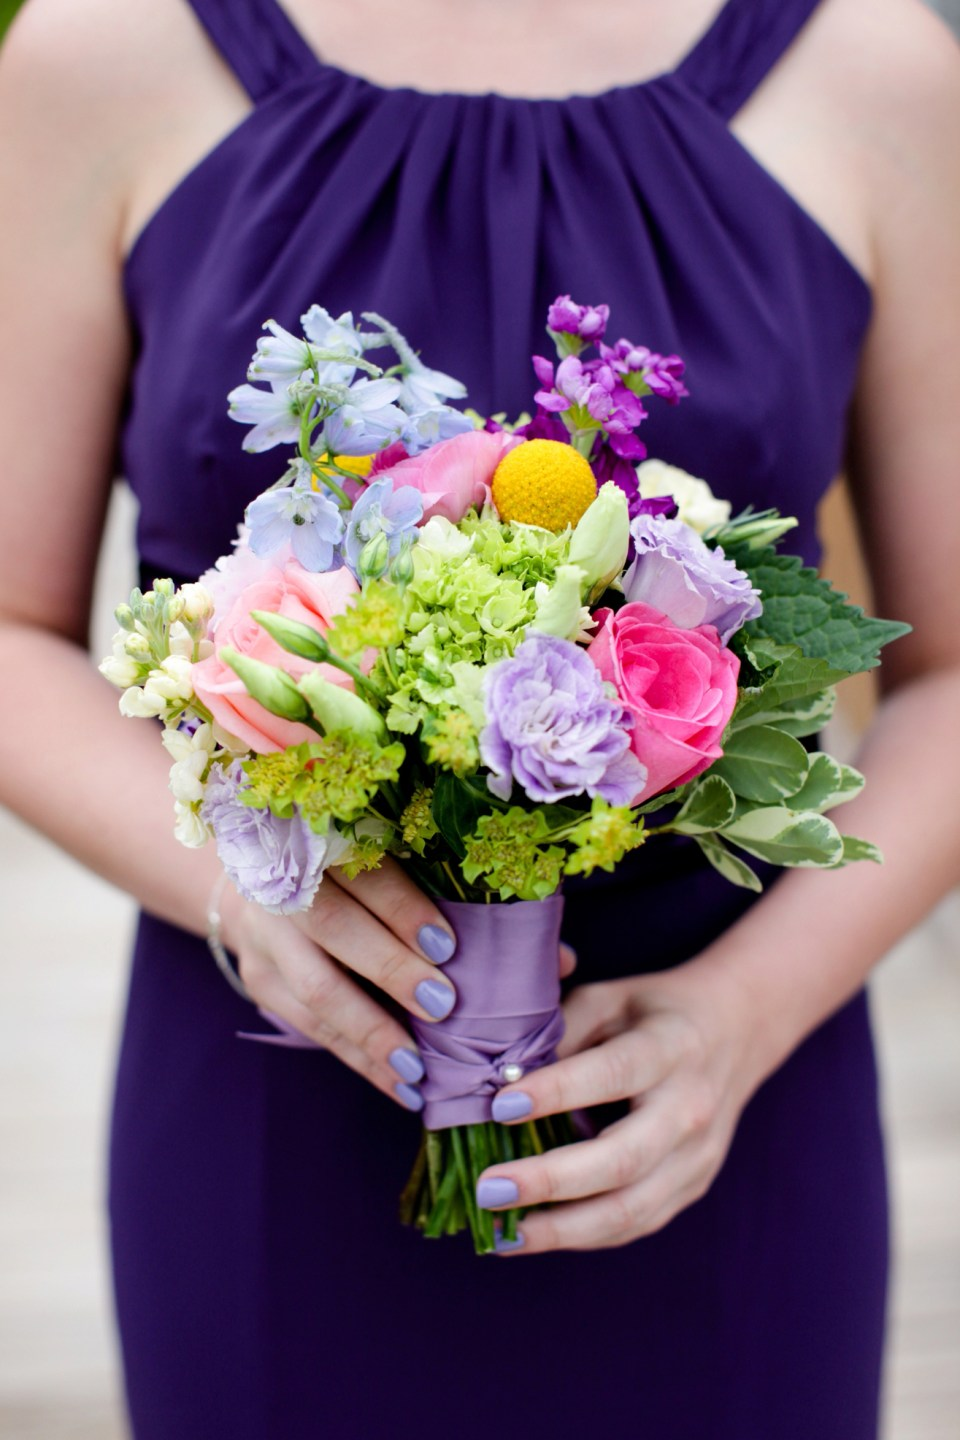 Wedding-Bouquet-Inspiration-Flowers-Bridal-Bridesmaids344